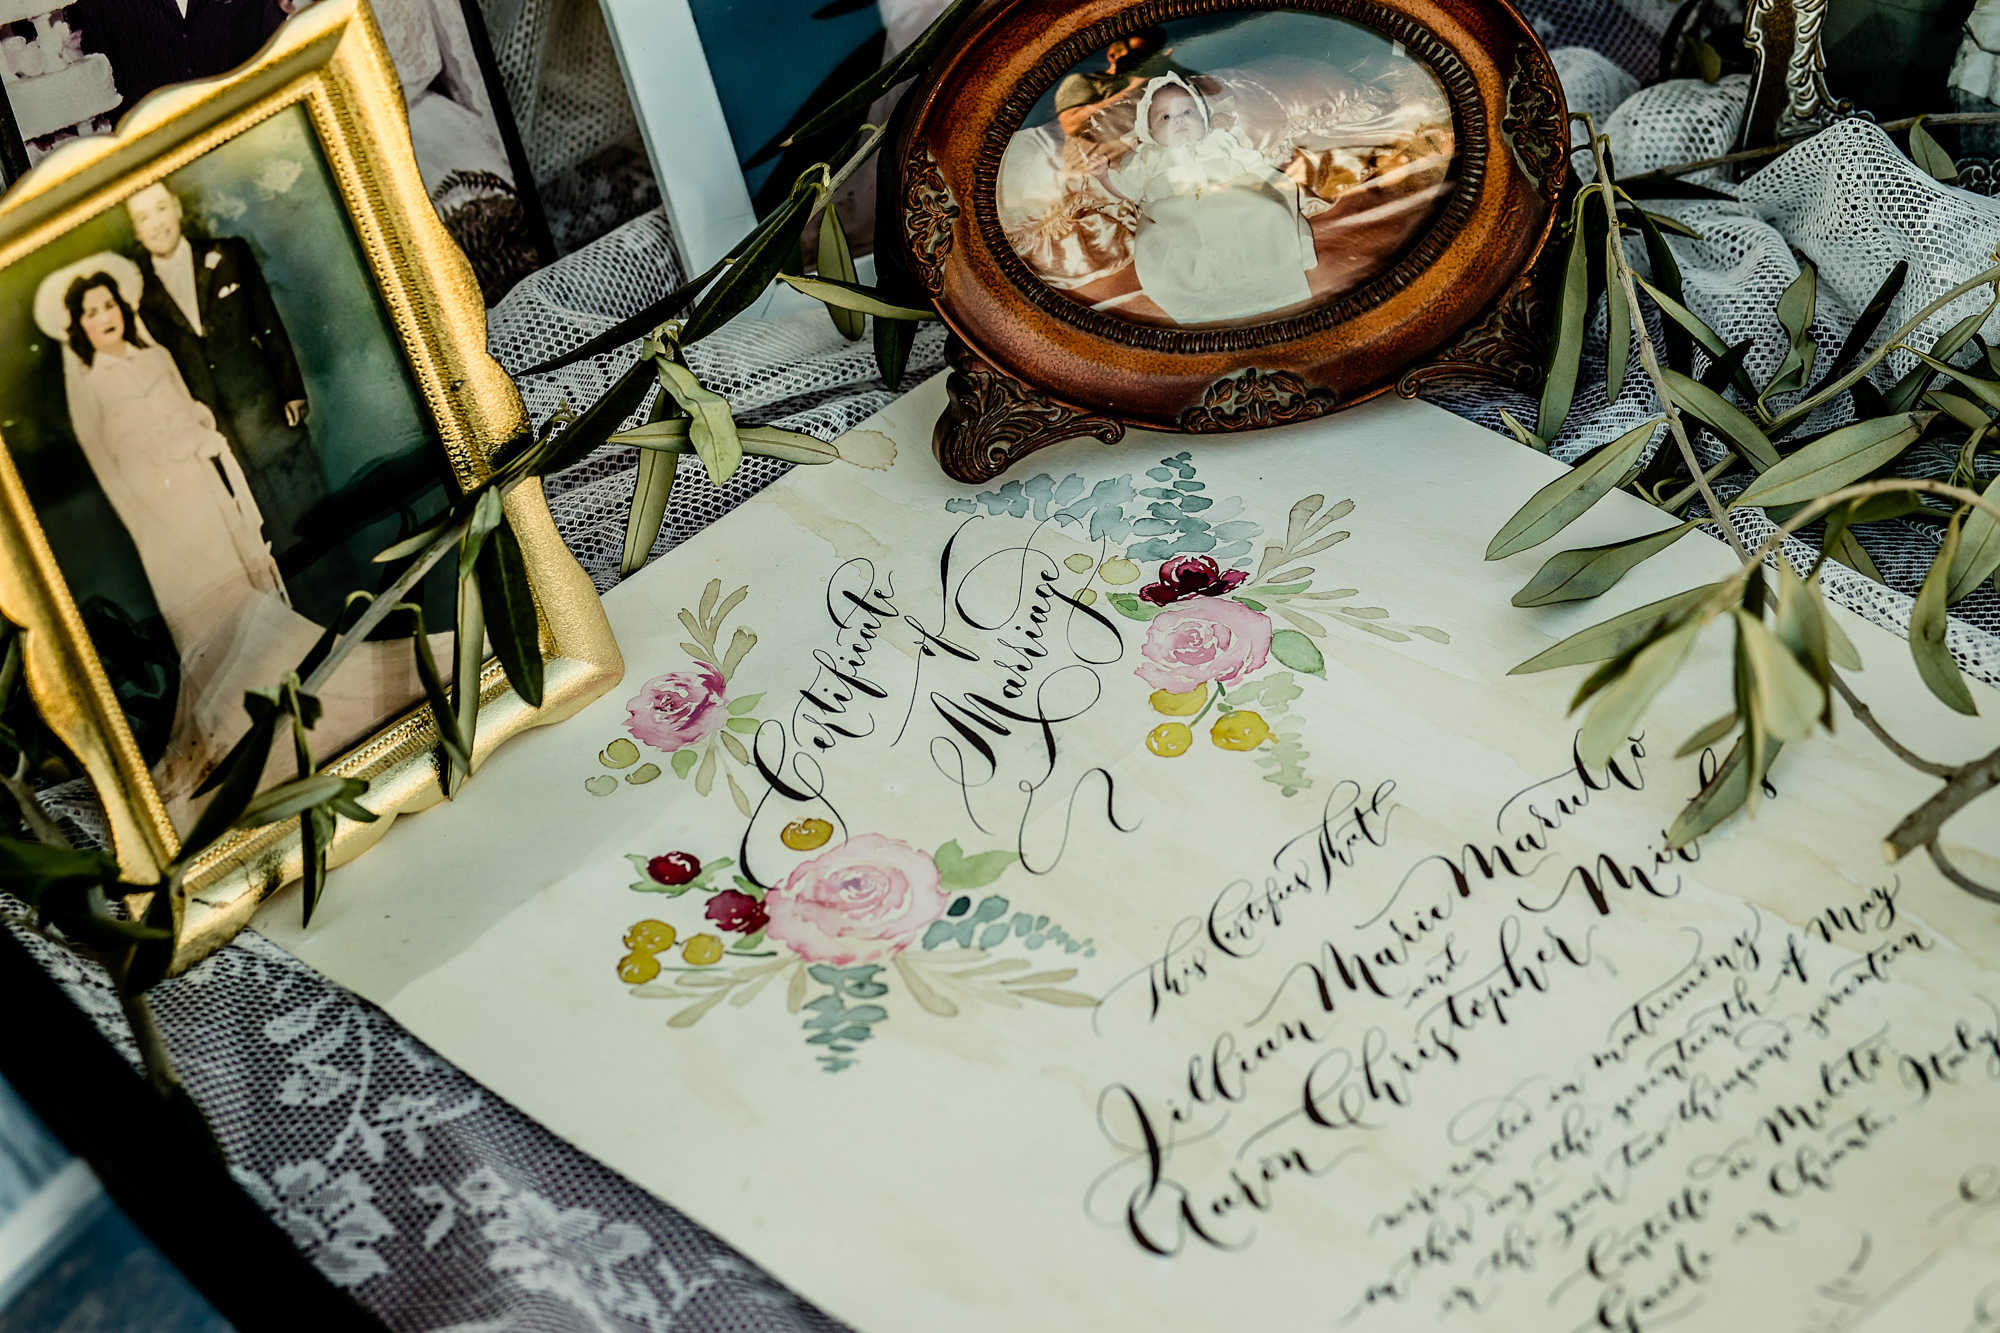 Vintage floral marriage certificate photo by Eppel Photography Netherlands